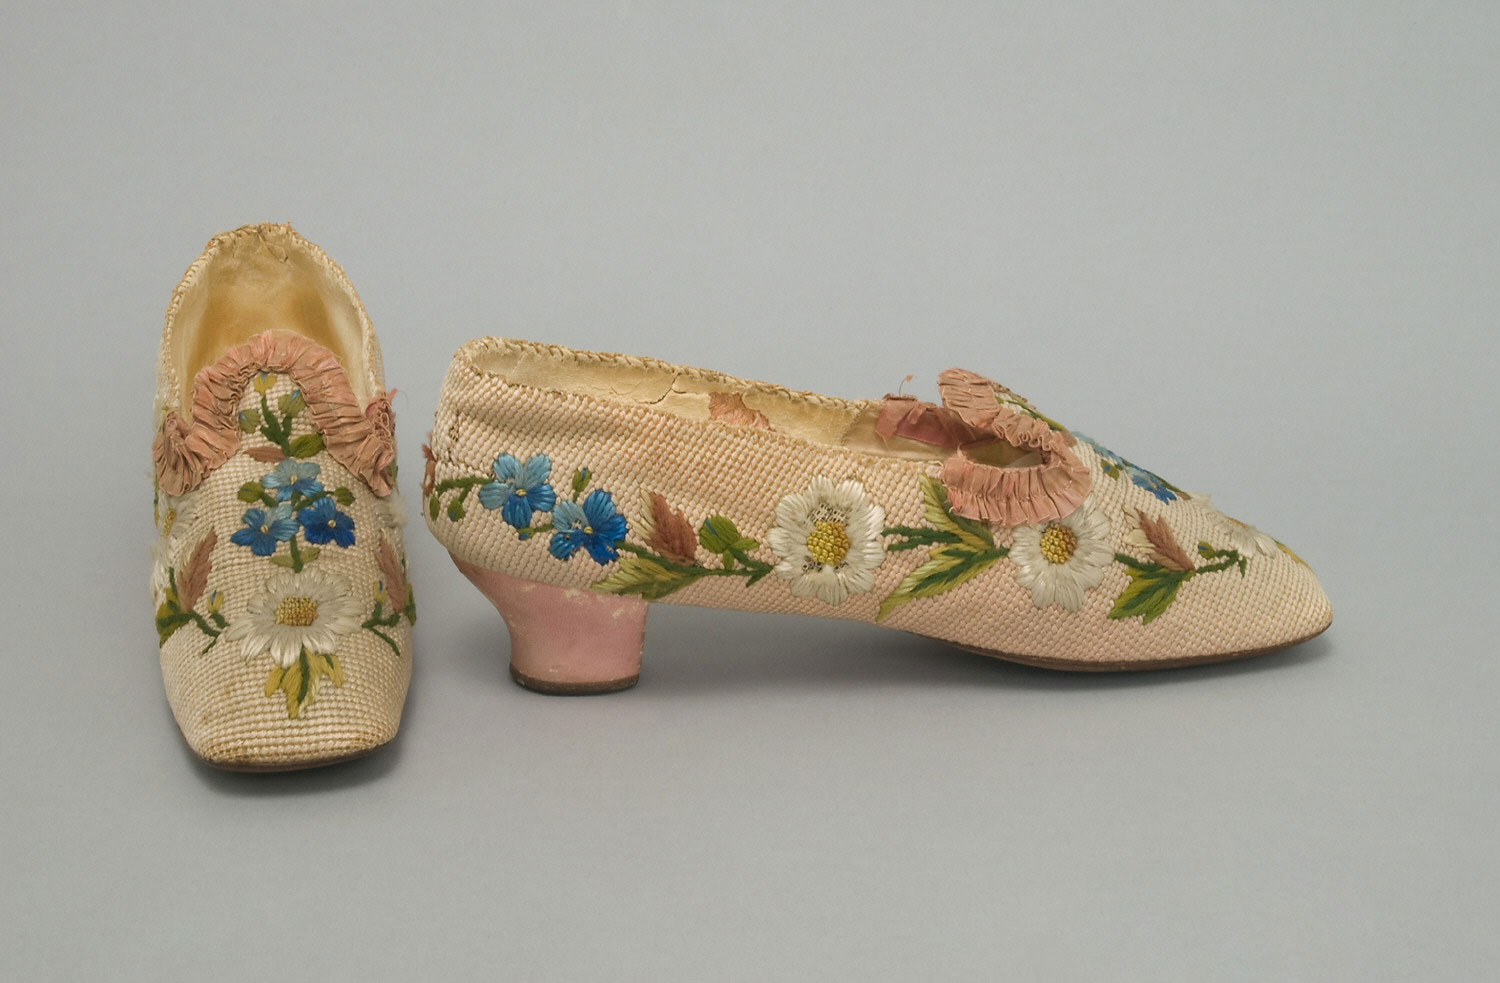 Woman's Embroidered Slippers